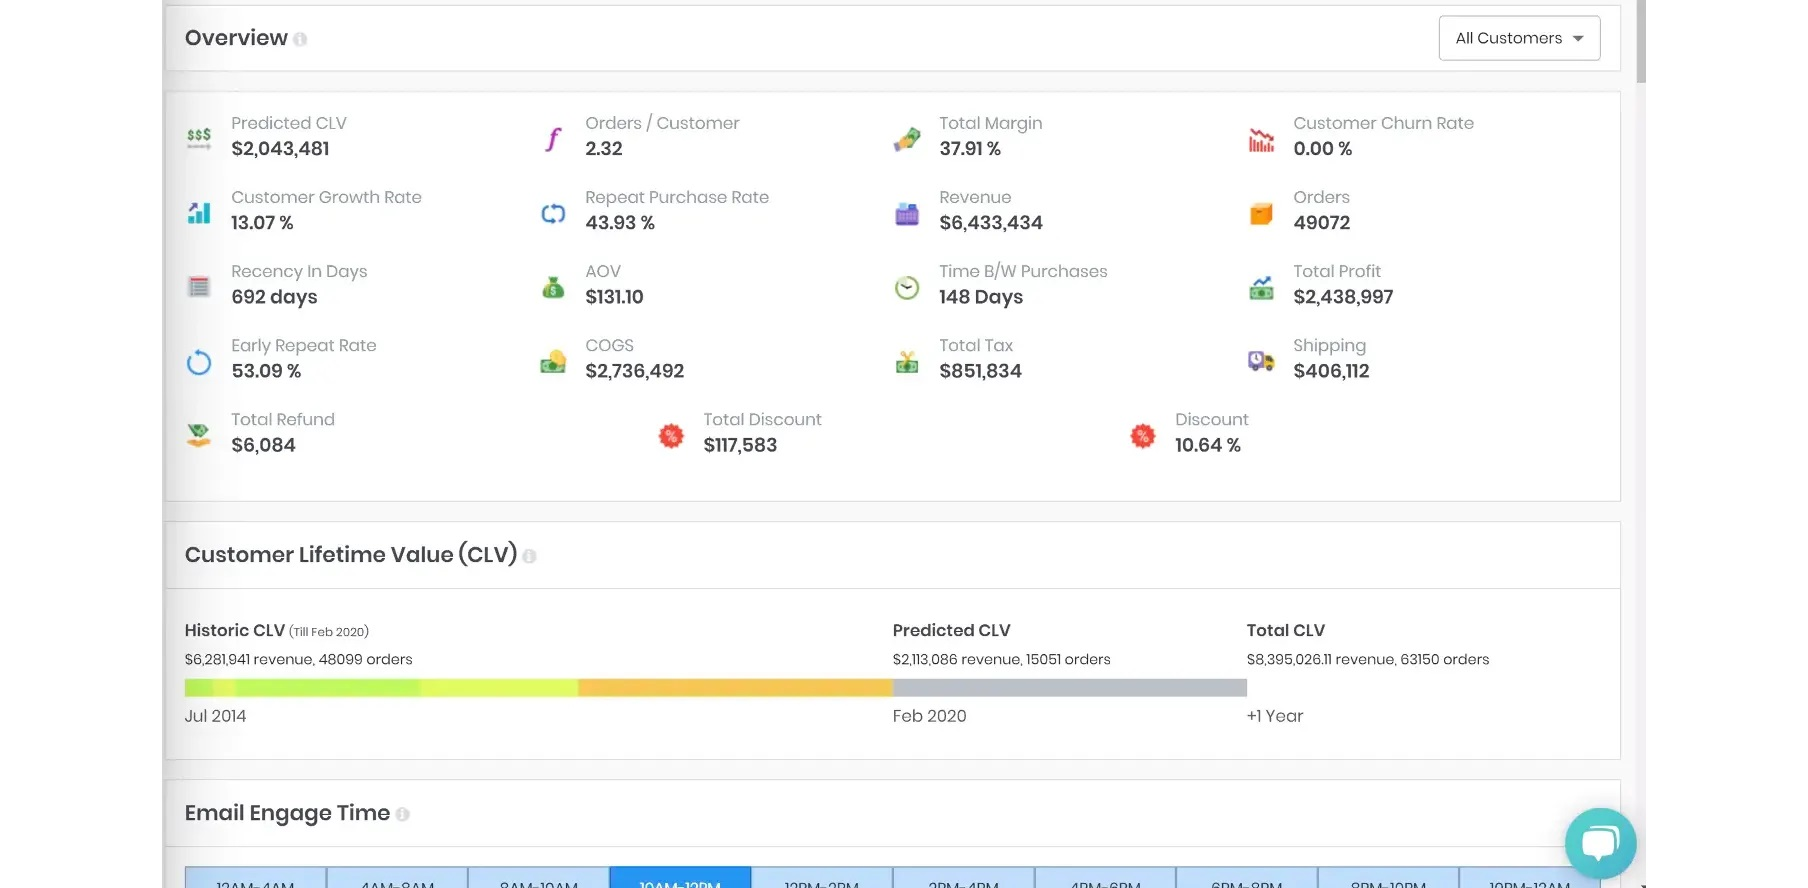 Overview dashboard in Enalito